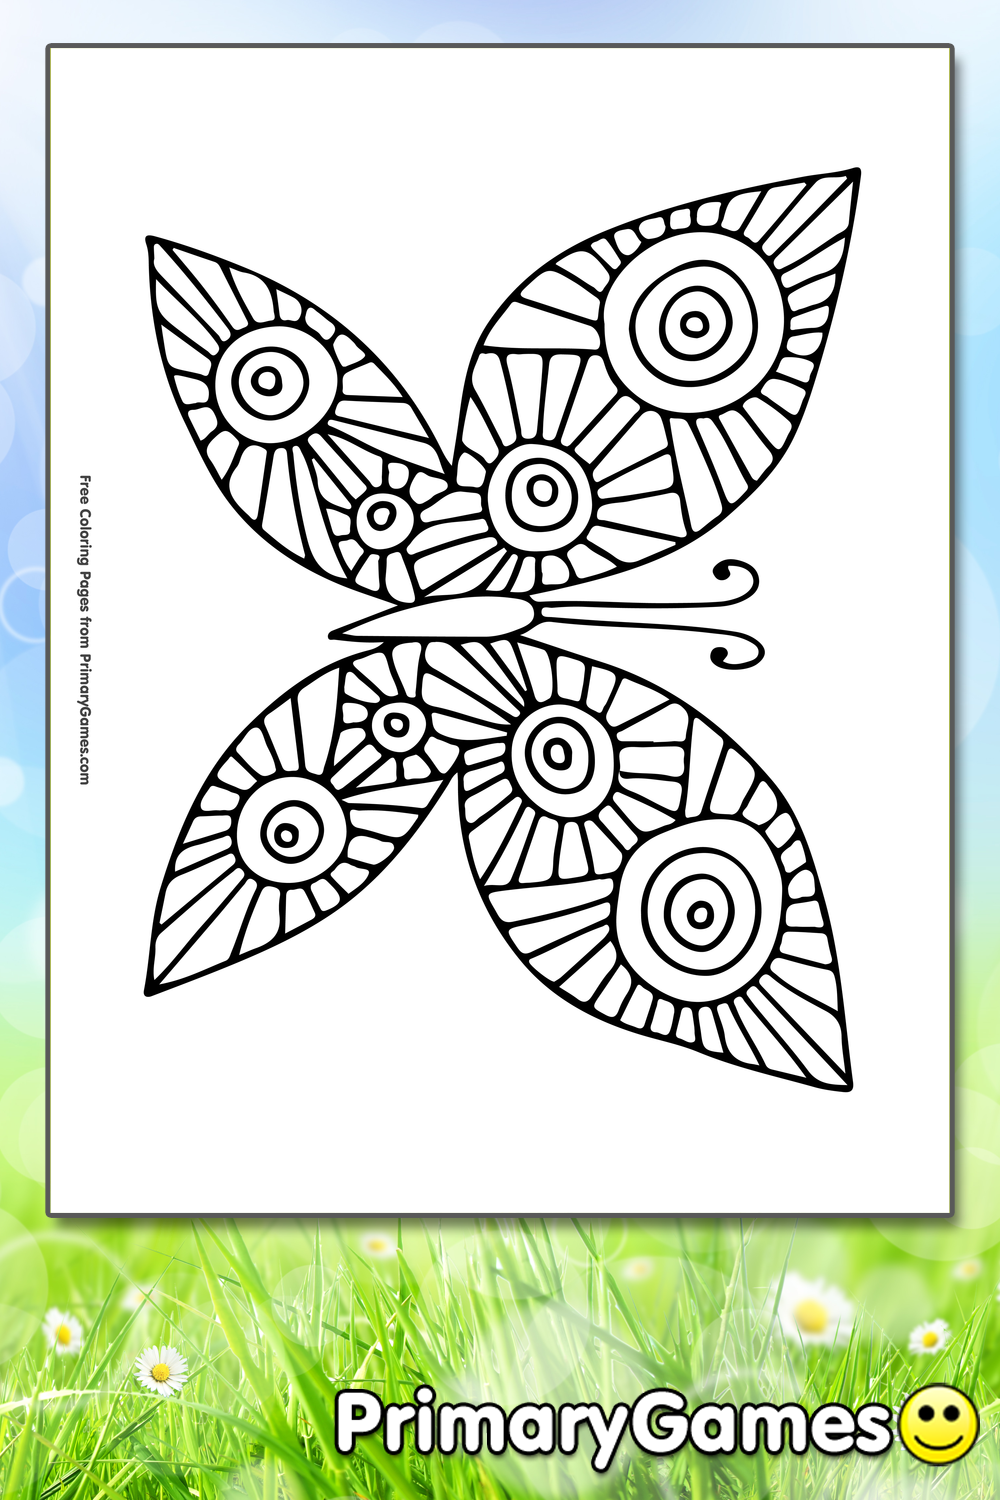 primary games coloring pages - photo#41